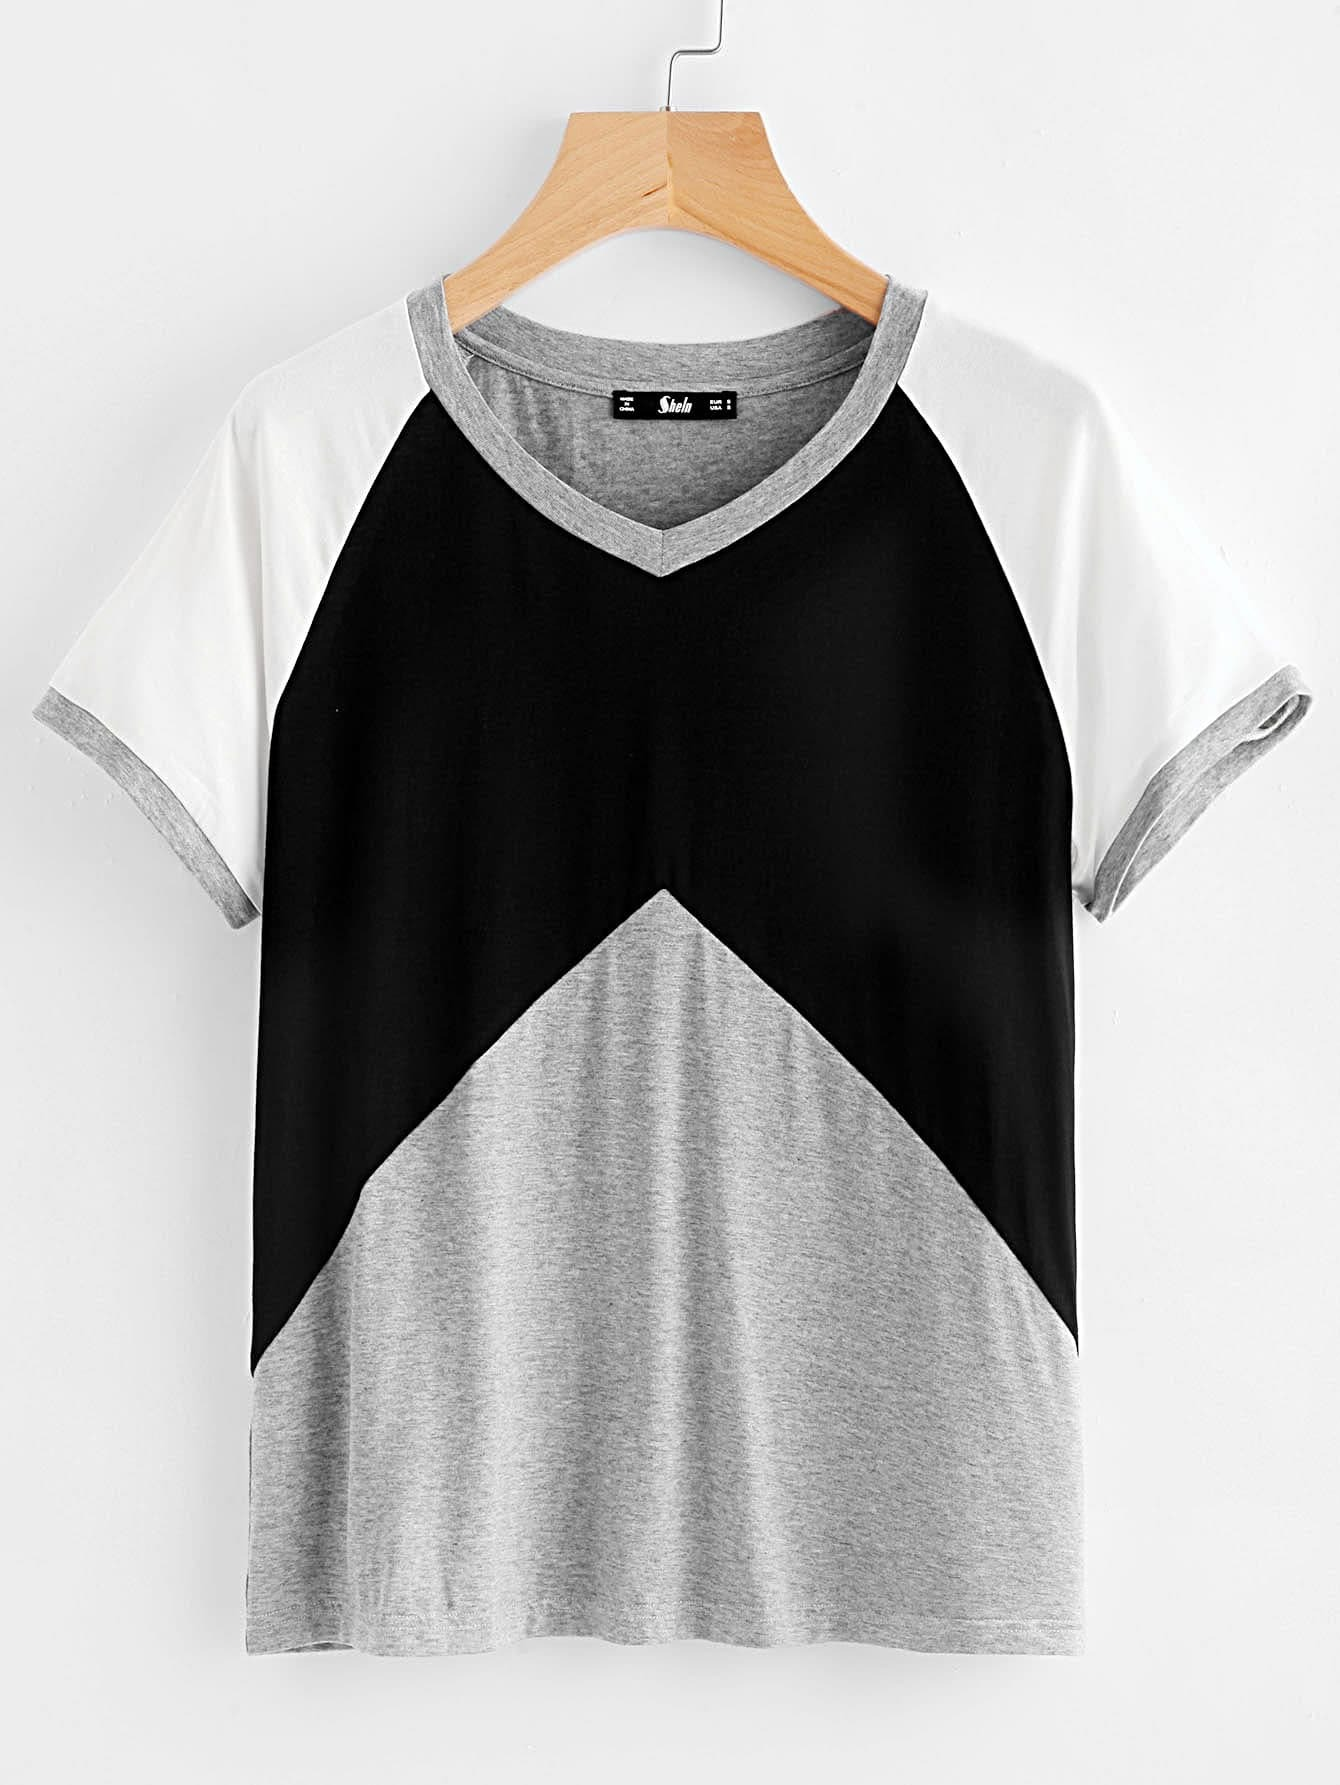 Heather Knit Raglan Sleeve Cut And Sew Tee tee170718710